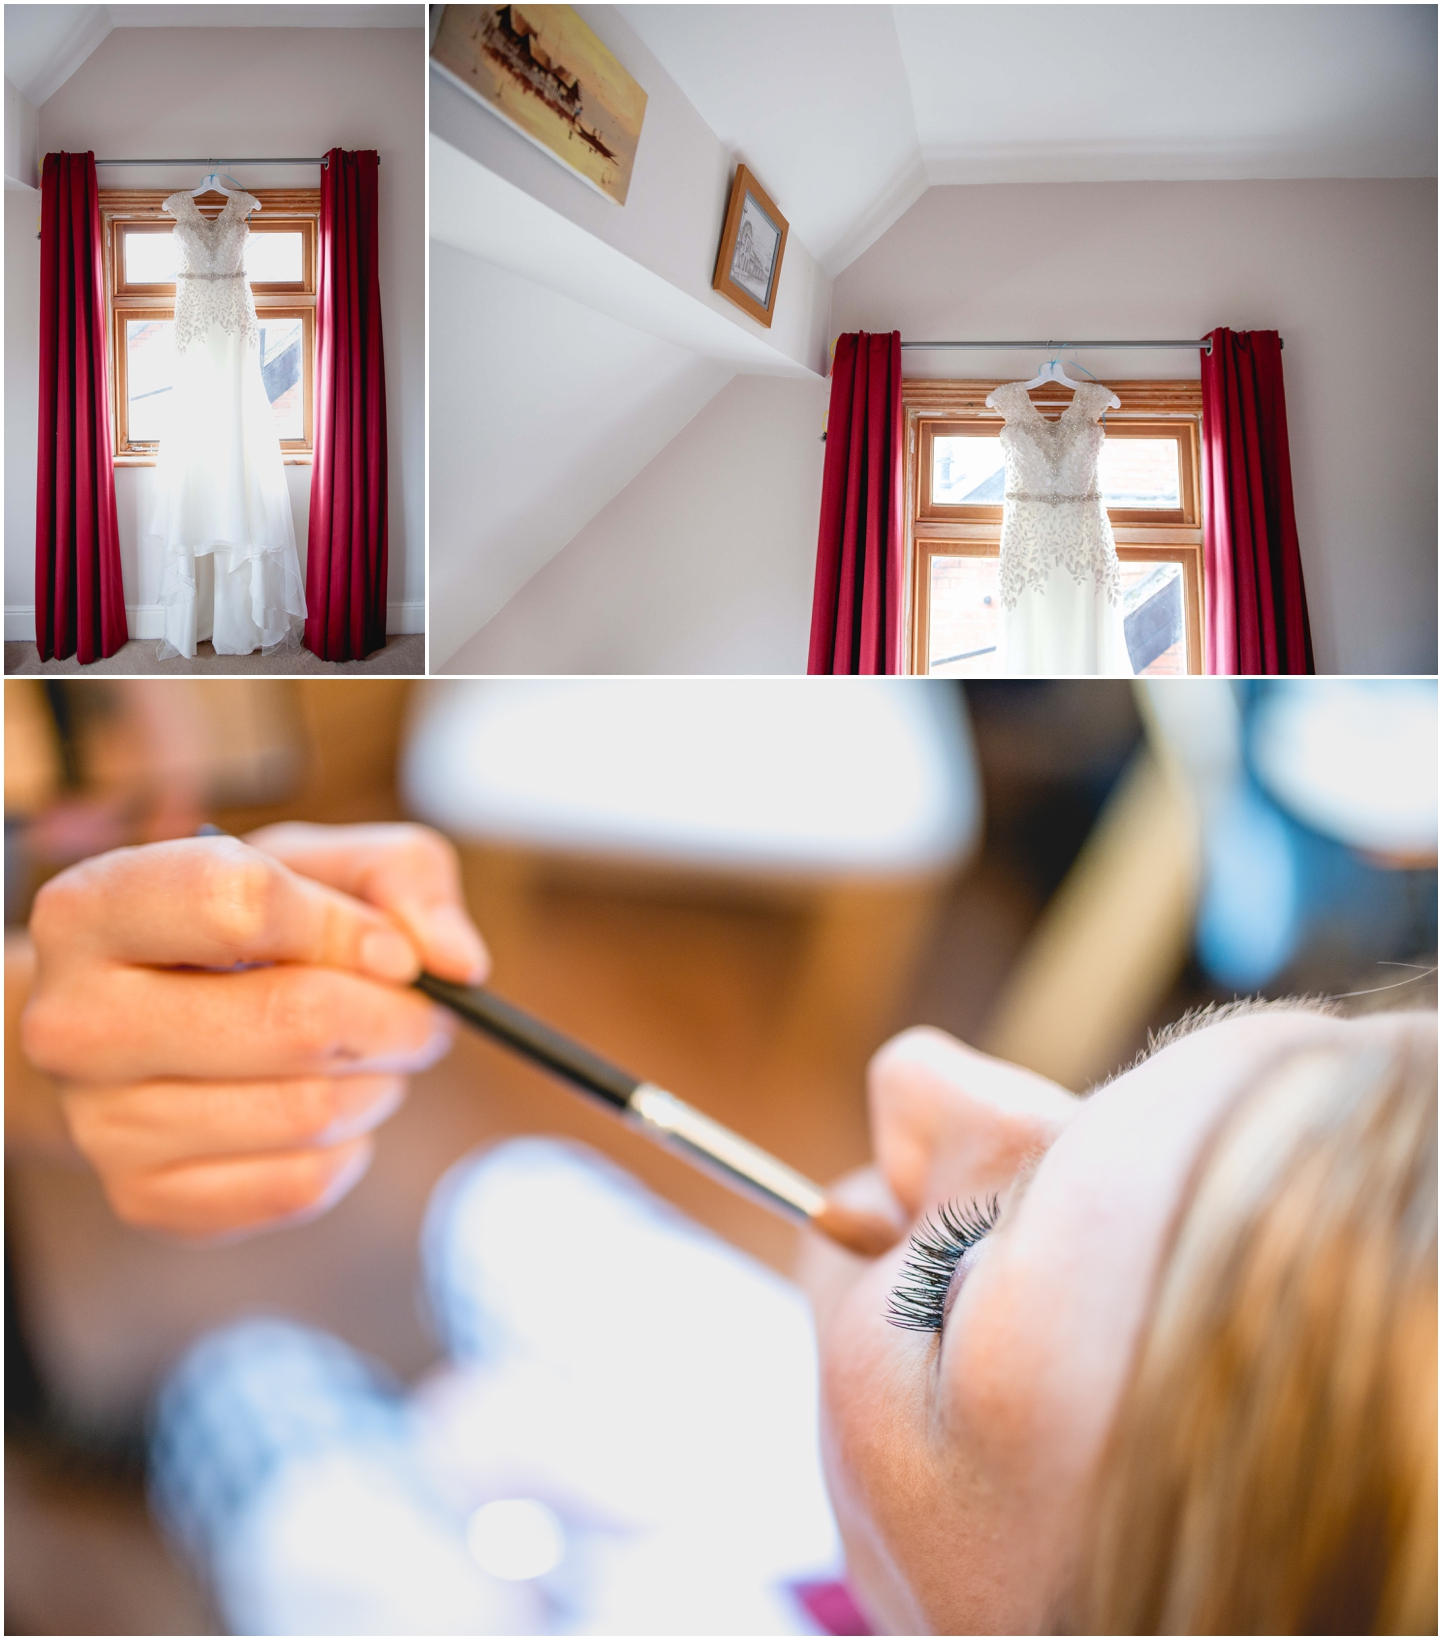 Pendrell Hall Wedding Photography by Lisa Carpenter Photography, West Midlands photographer, dress, bridal preparation